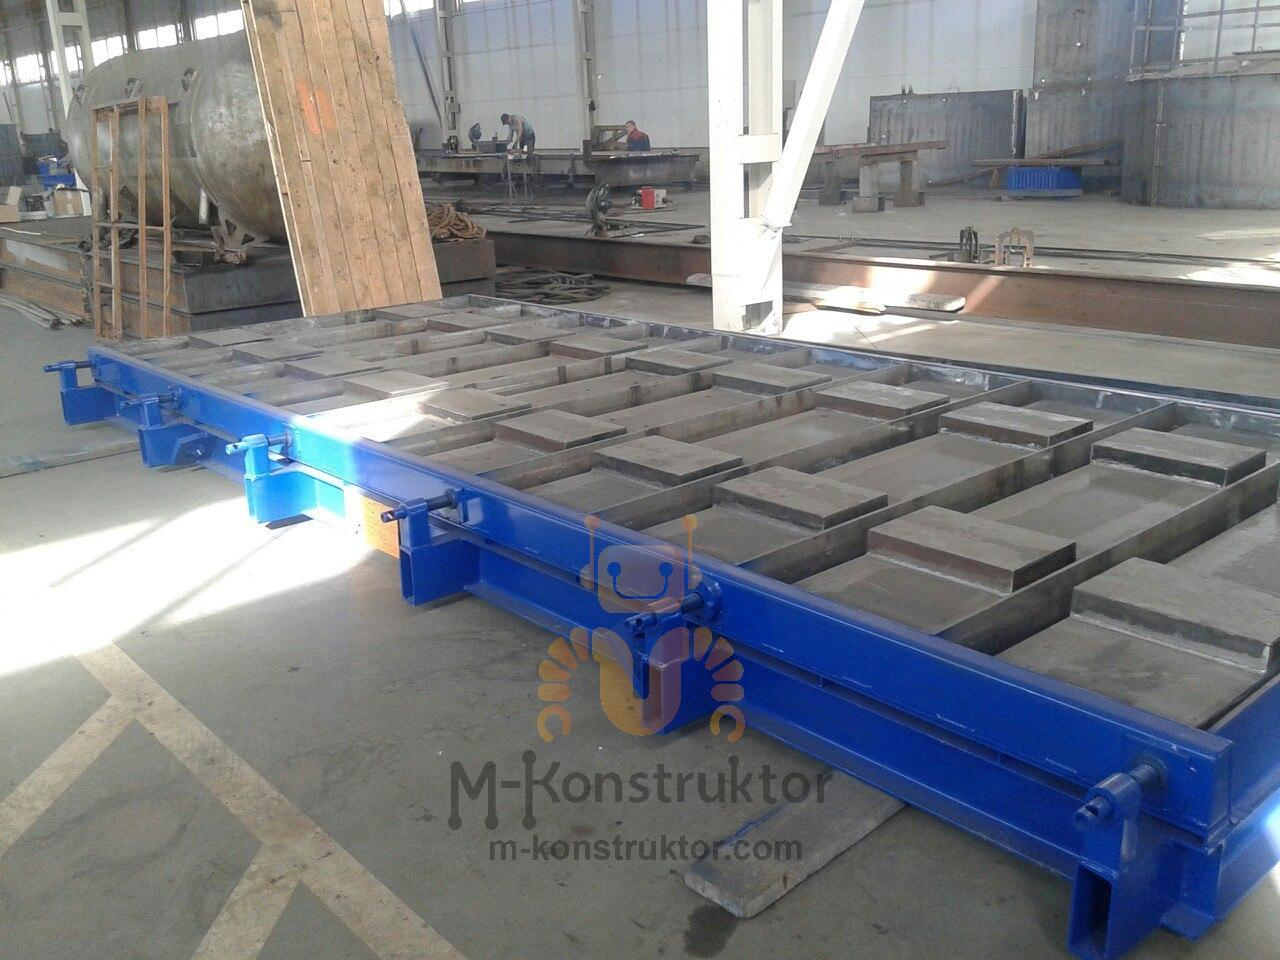 Steel moulds for precast concrete ductings for cable trays